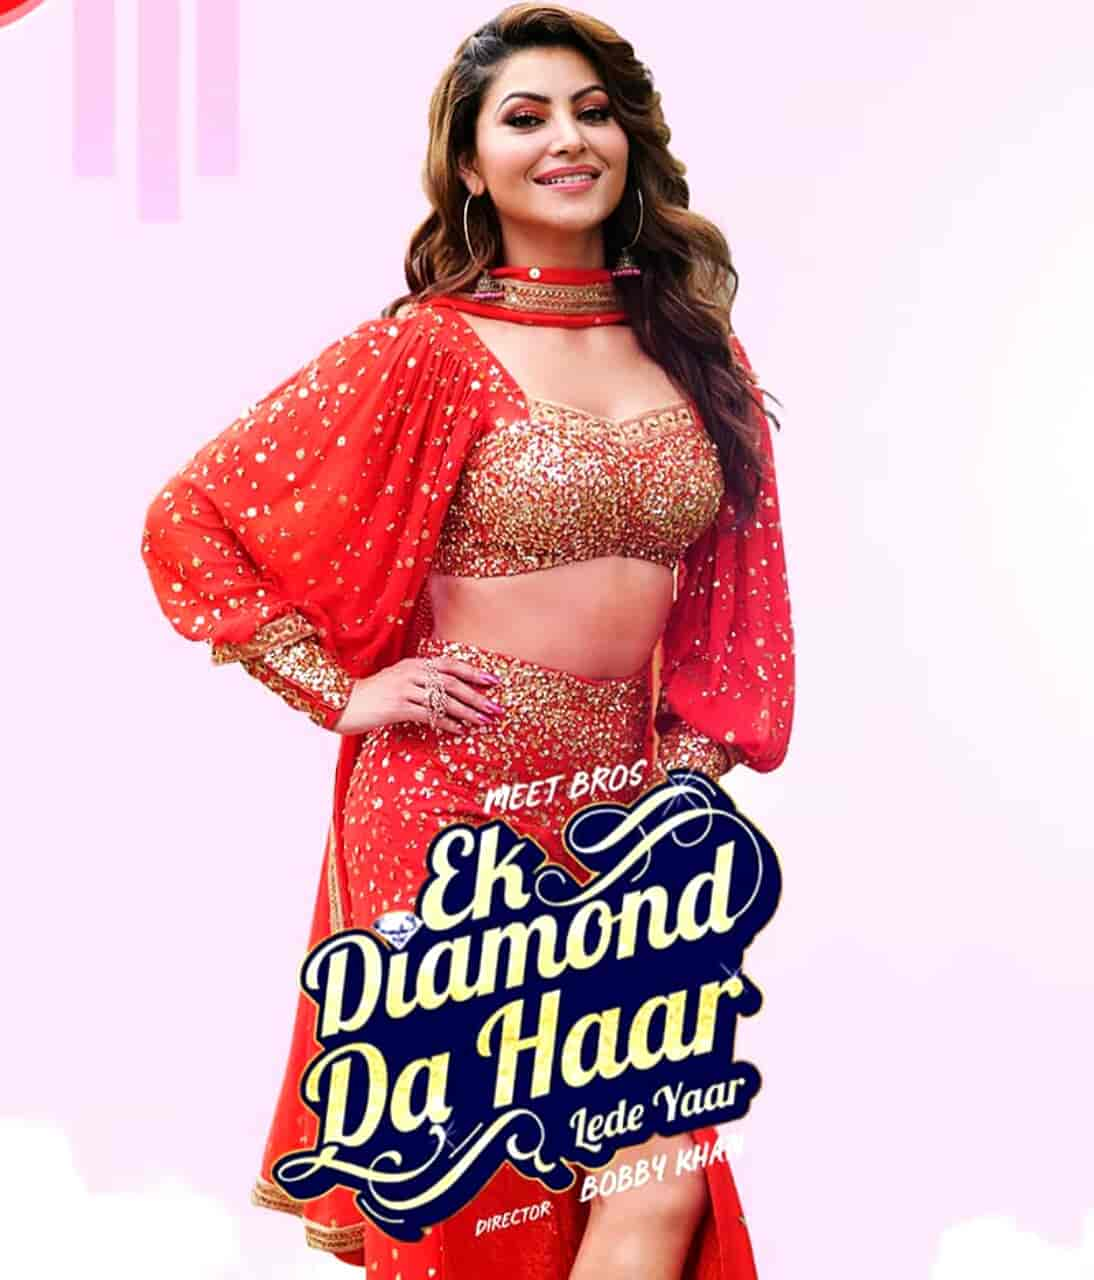 Ek Diamond Da Haar Lede Yaar Song Images By Meet Bros